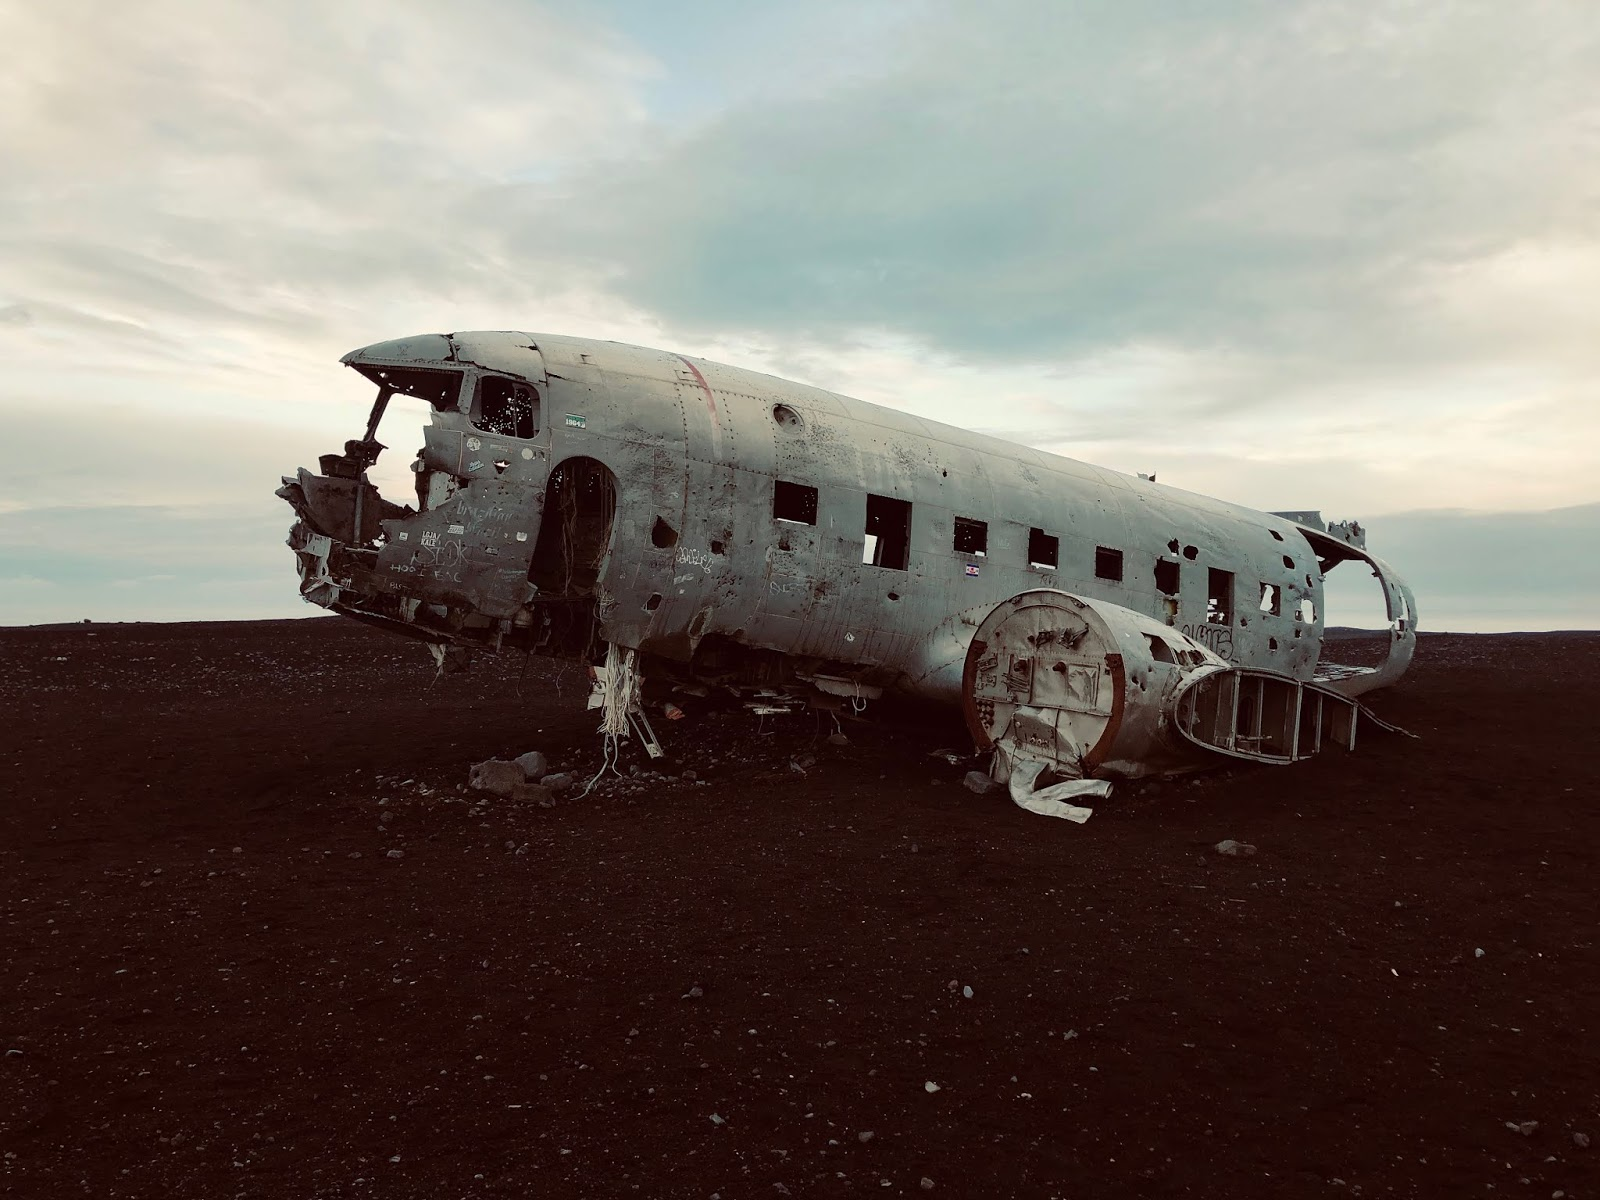 Abandoned DC Plane on Sólheimasandur, hiking and running in iceland, running to the Abandoned DC Plane, Sólheimasandur, hiking in iceland, iceland hikes, running around, hiking up mountains, mountain runner, mountains, lava rocks,